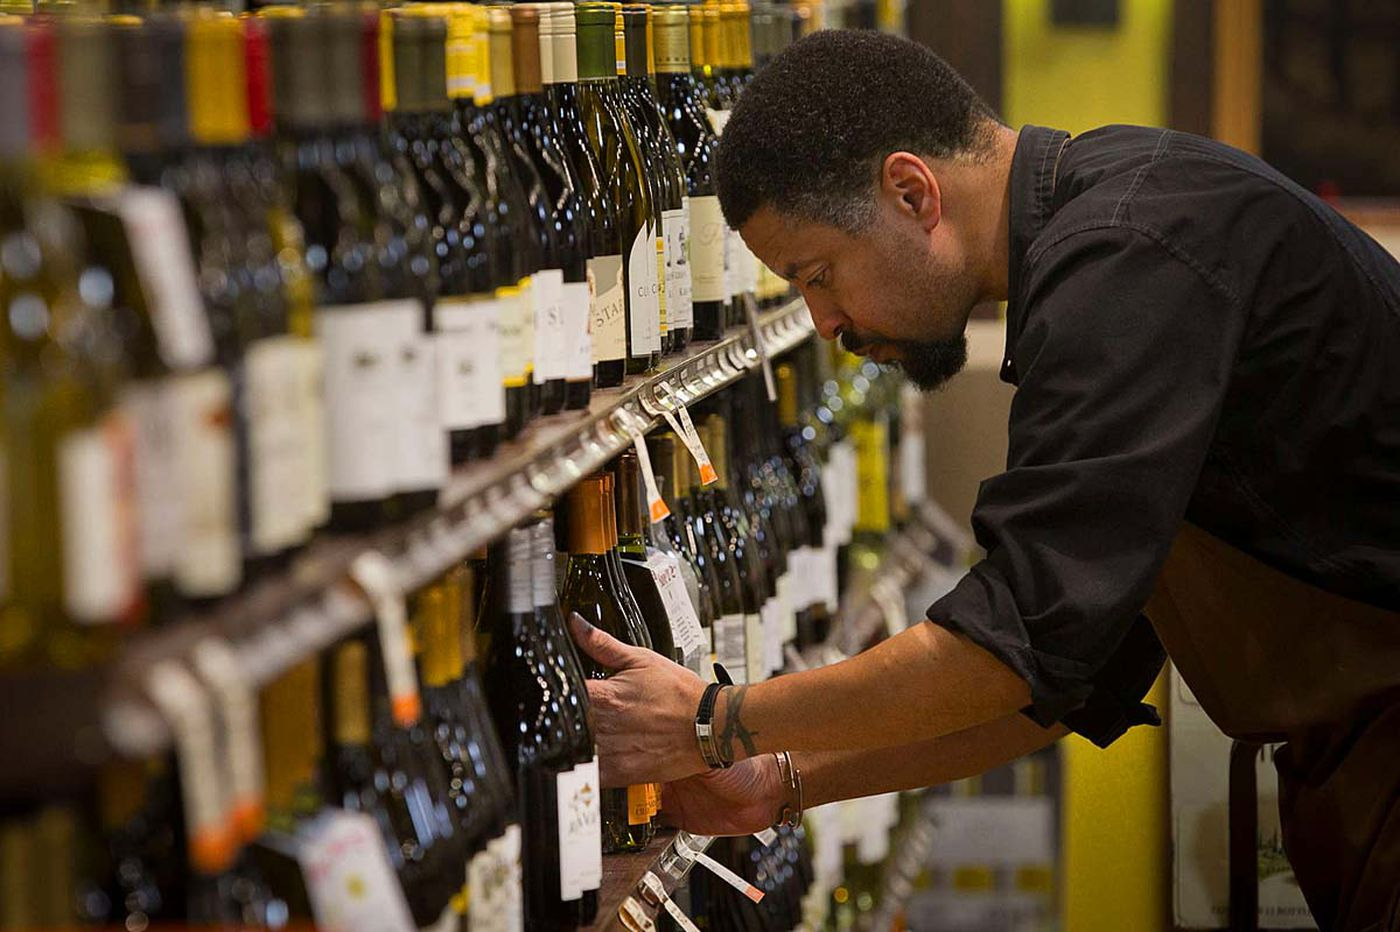 This wine is one of the best bargains in the state store's French aisle